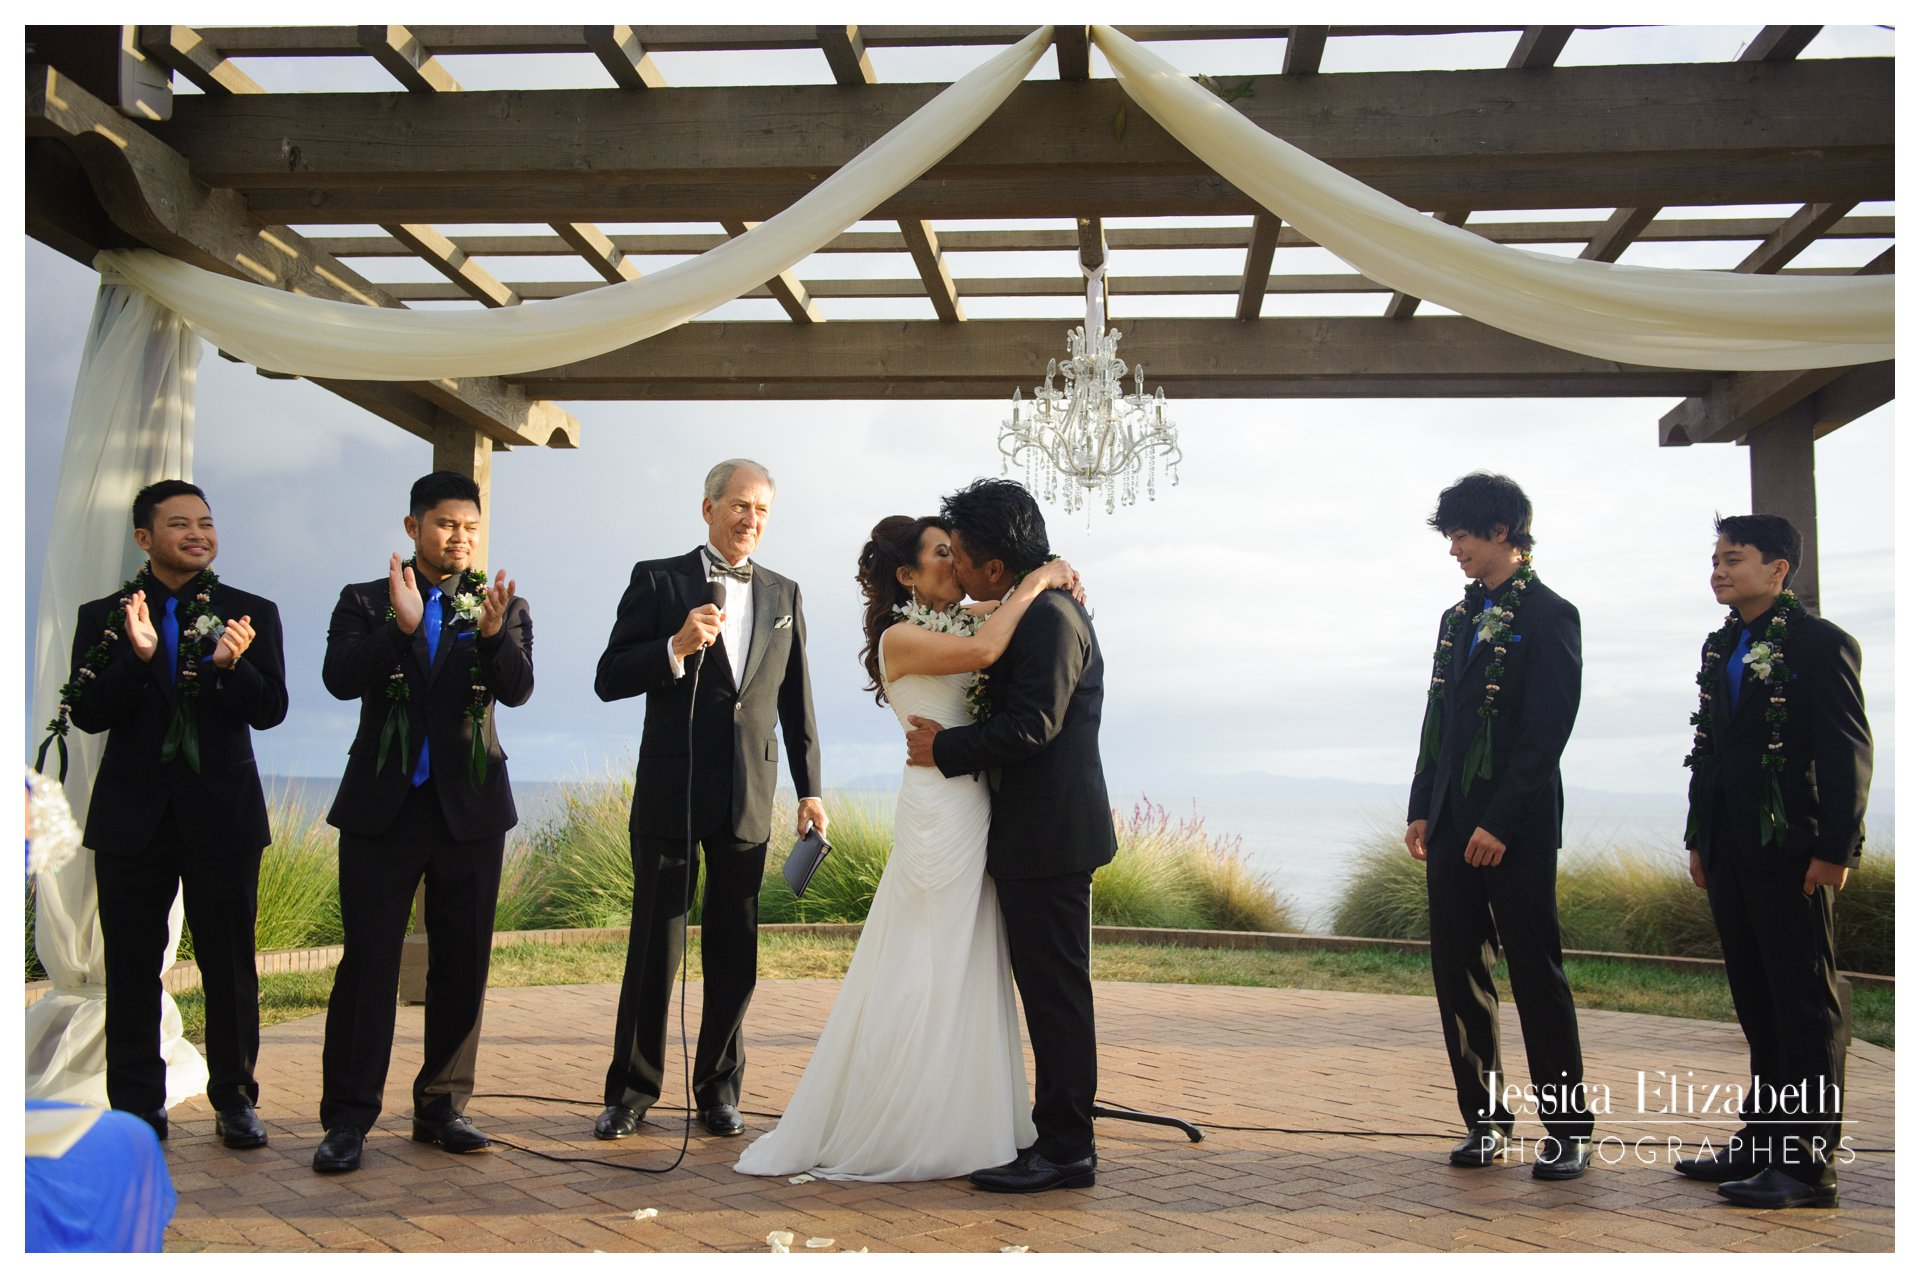 25-Terranea-Palos-Verdes-Wedding-Photography-by-Jessica-Elizabeth-w.jpg